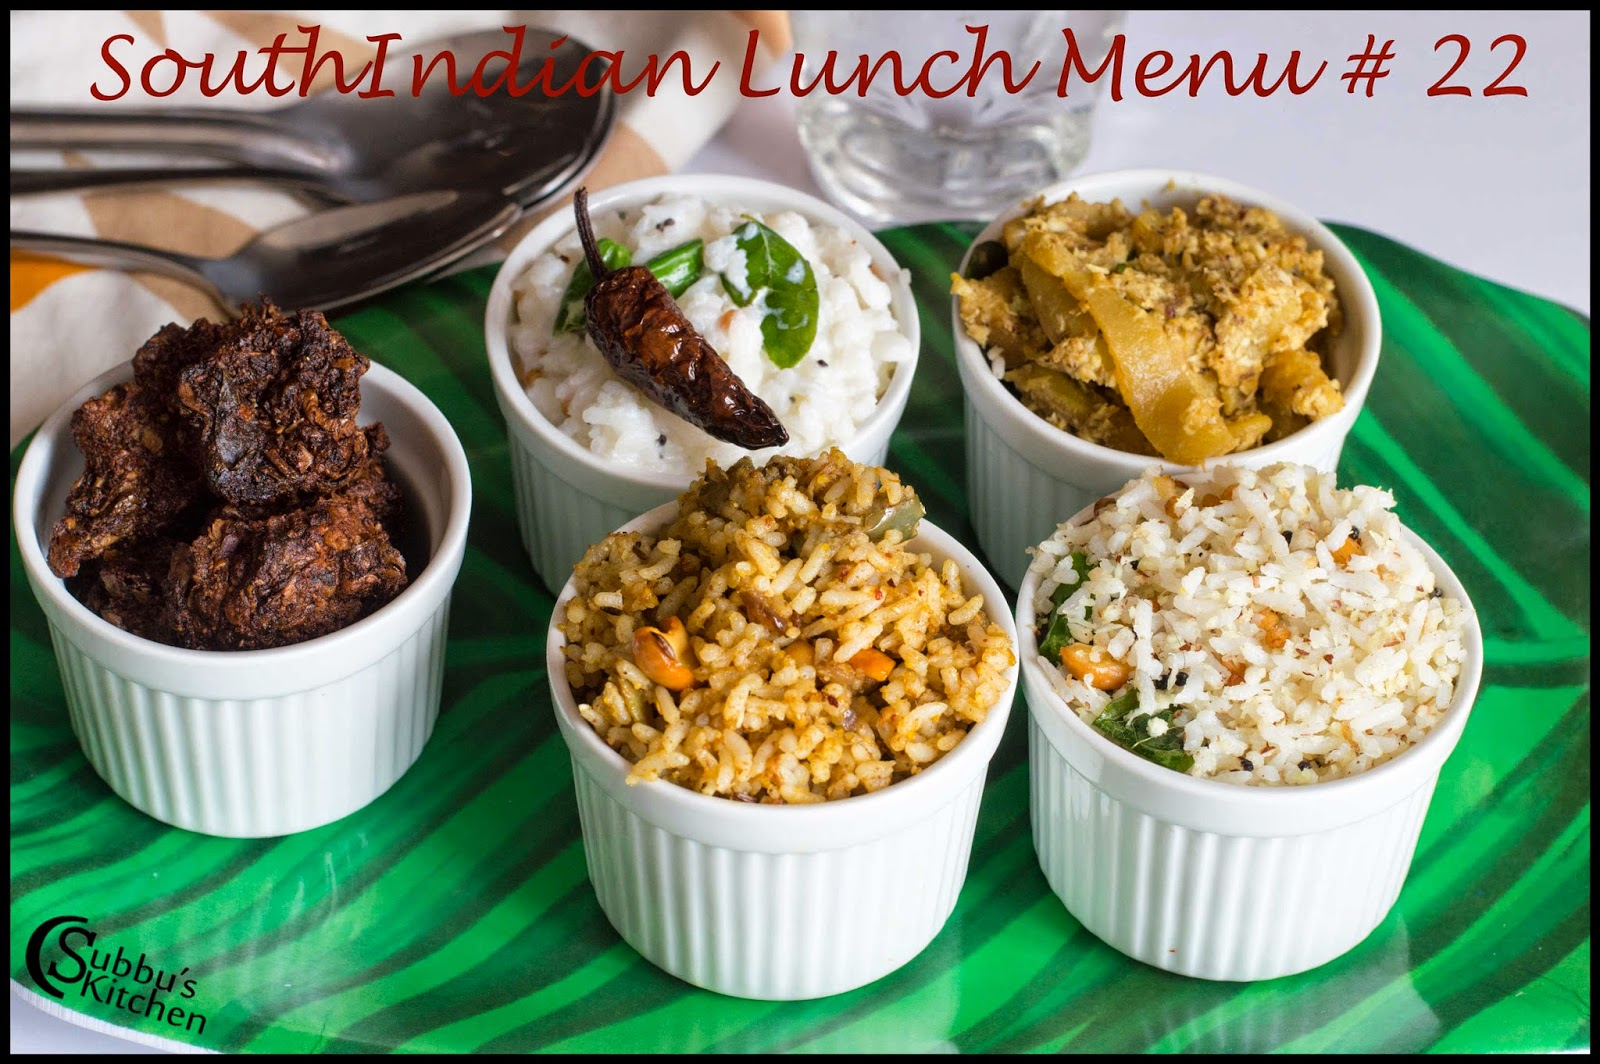 South Indian Lunch Menu 22 -Vaangibath, Coconut Rice, Aviyal, Curd Rice, Vadam, Rice